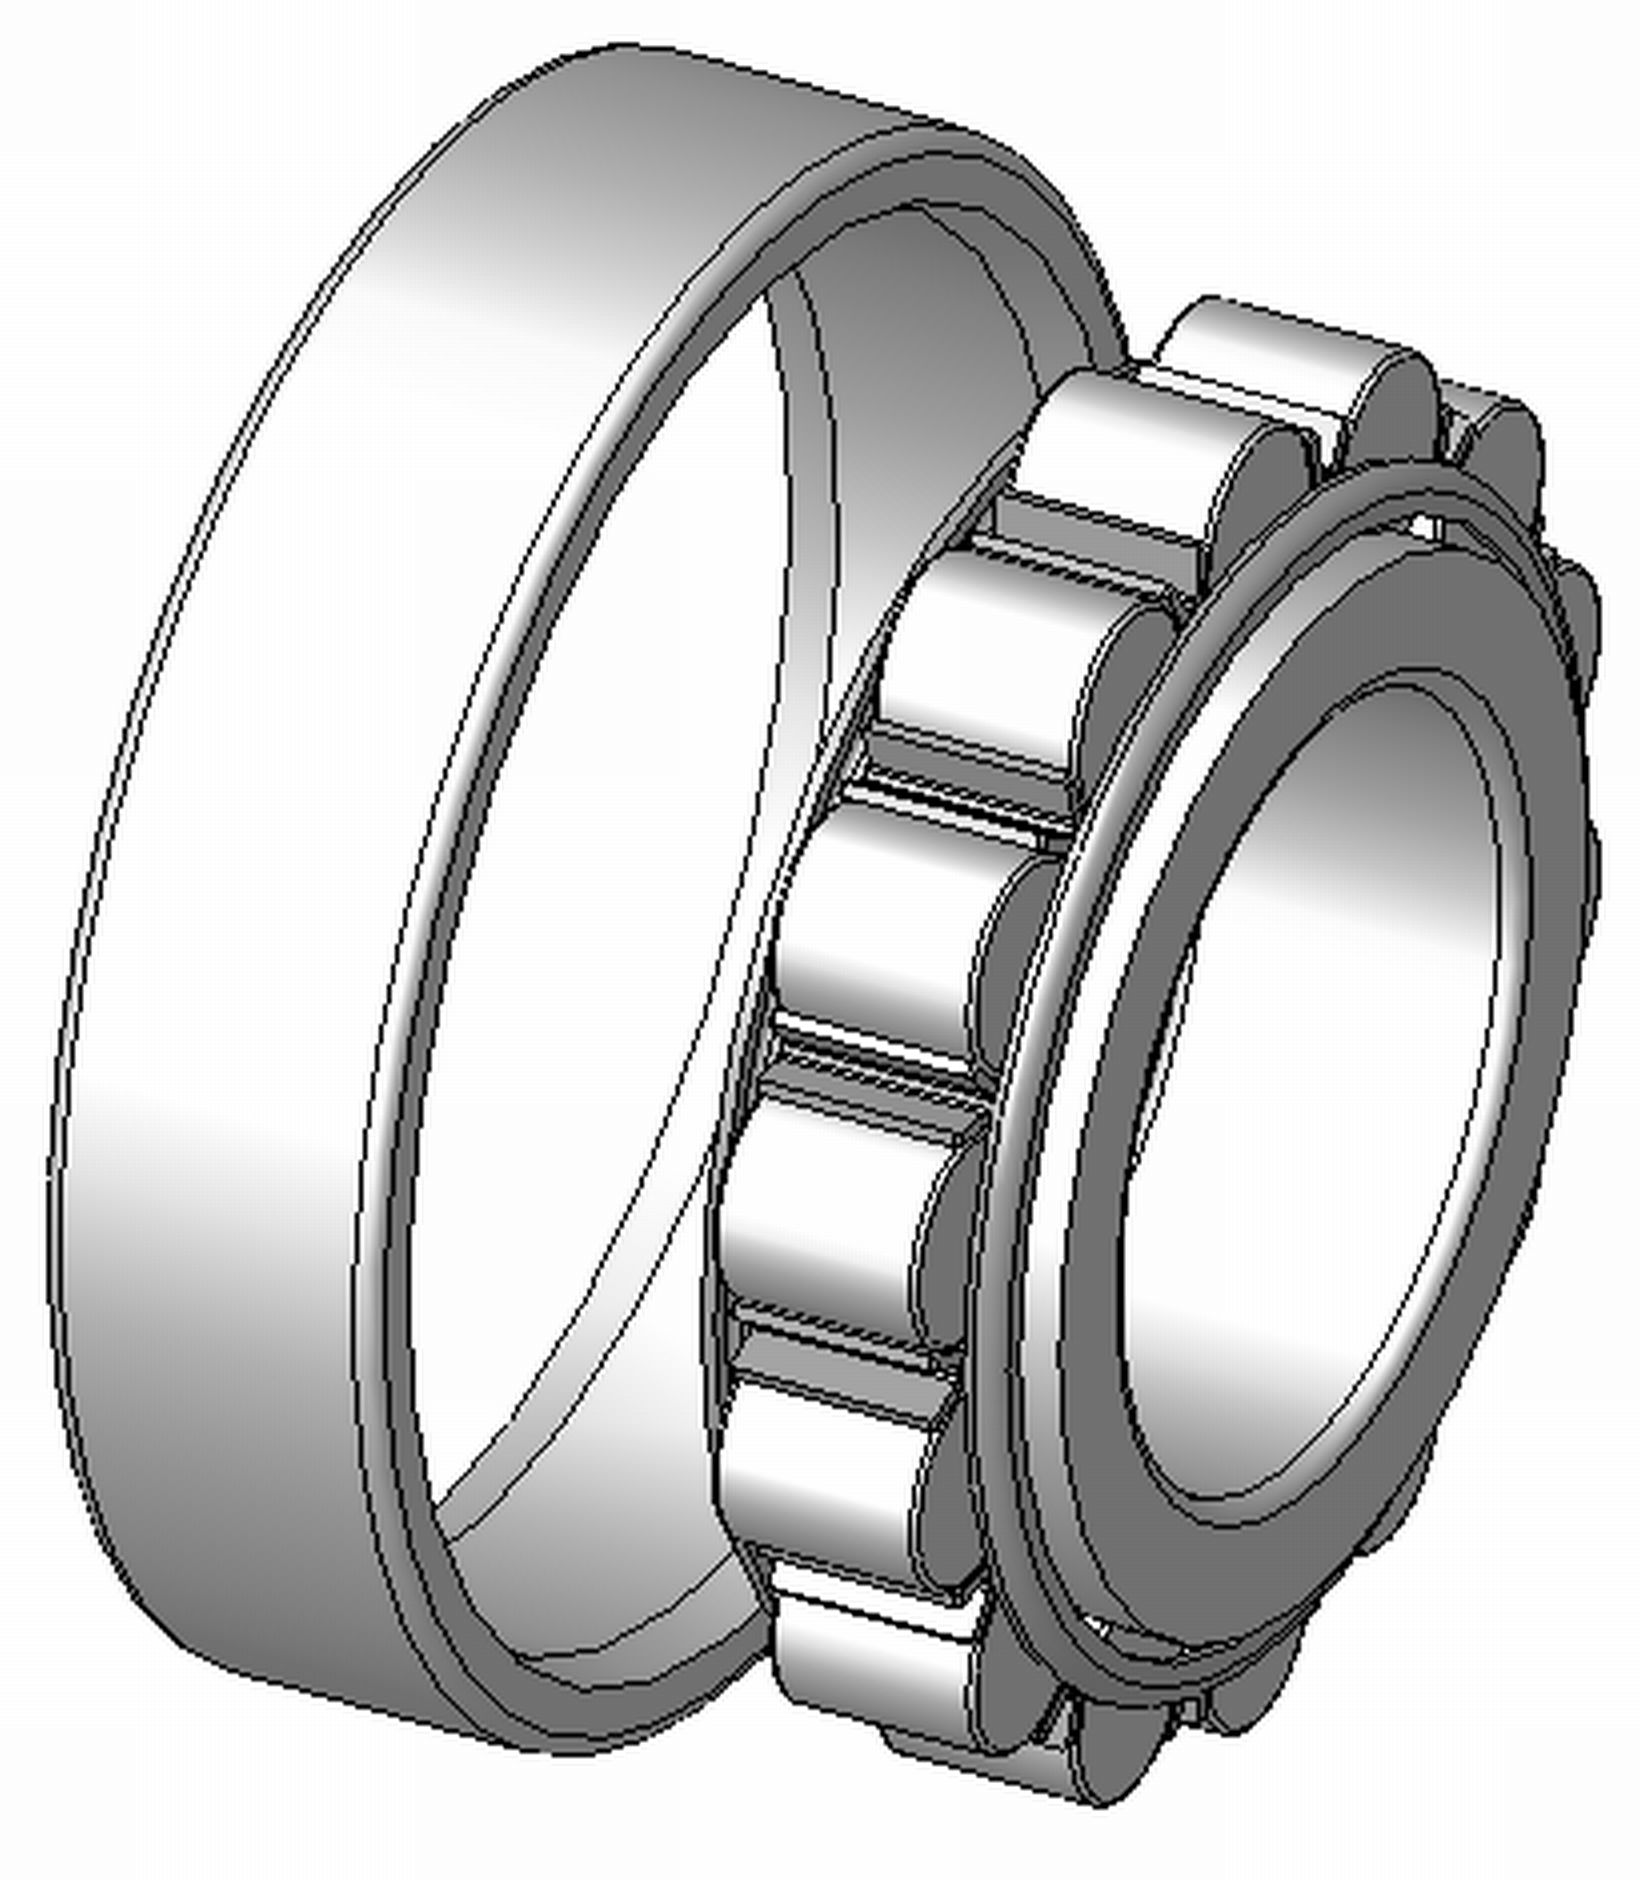 """LRJ2.3/4J - LRJ Type Cylindrical Roller Bearing - 2.3/4 x 5.1/4 x 15/16"""